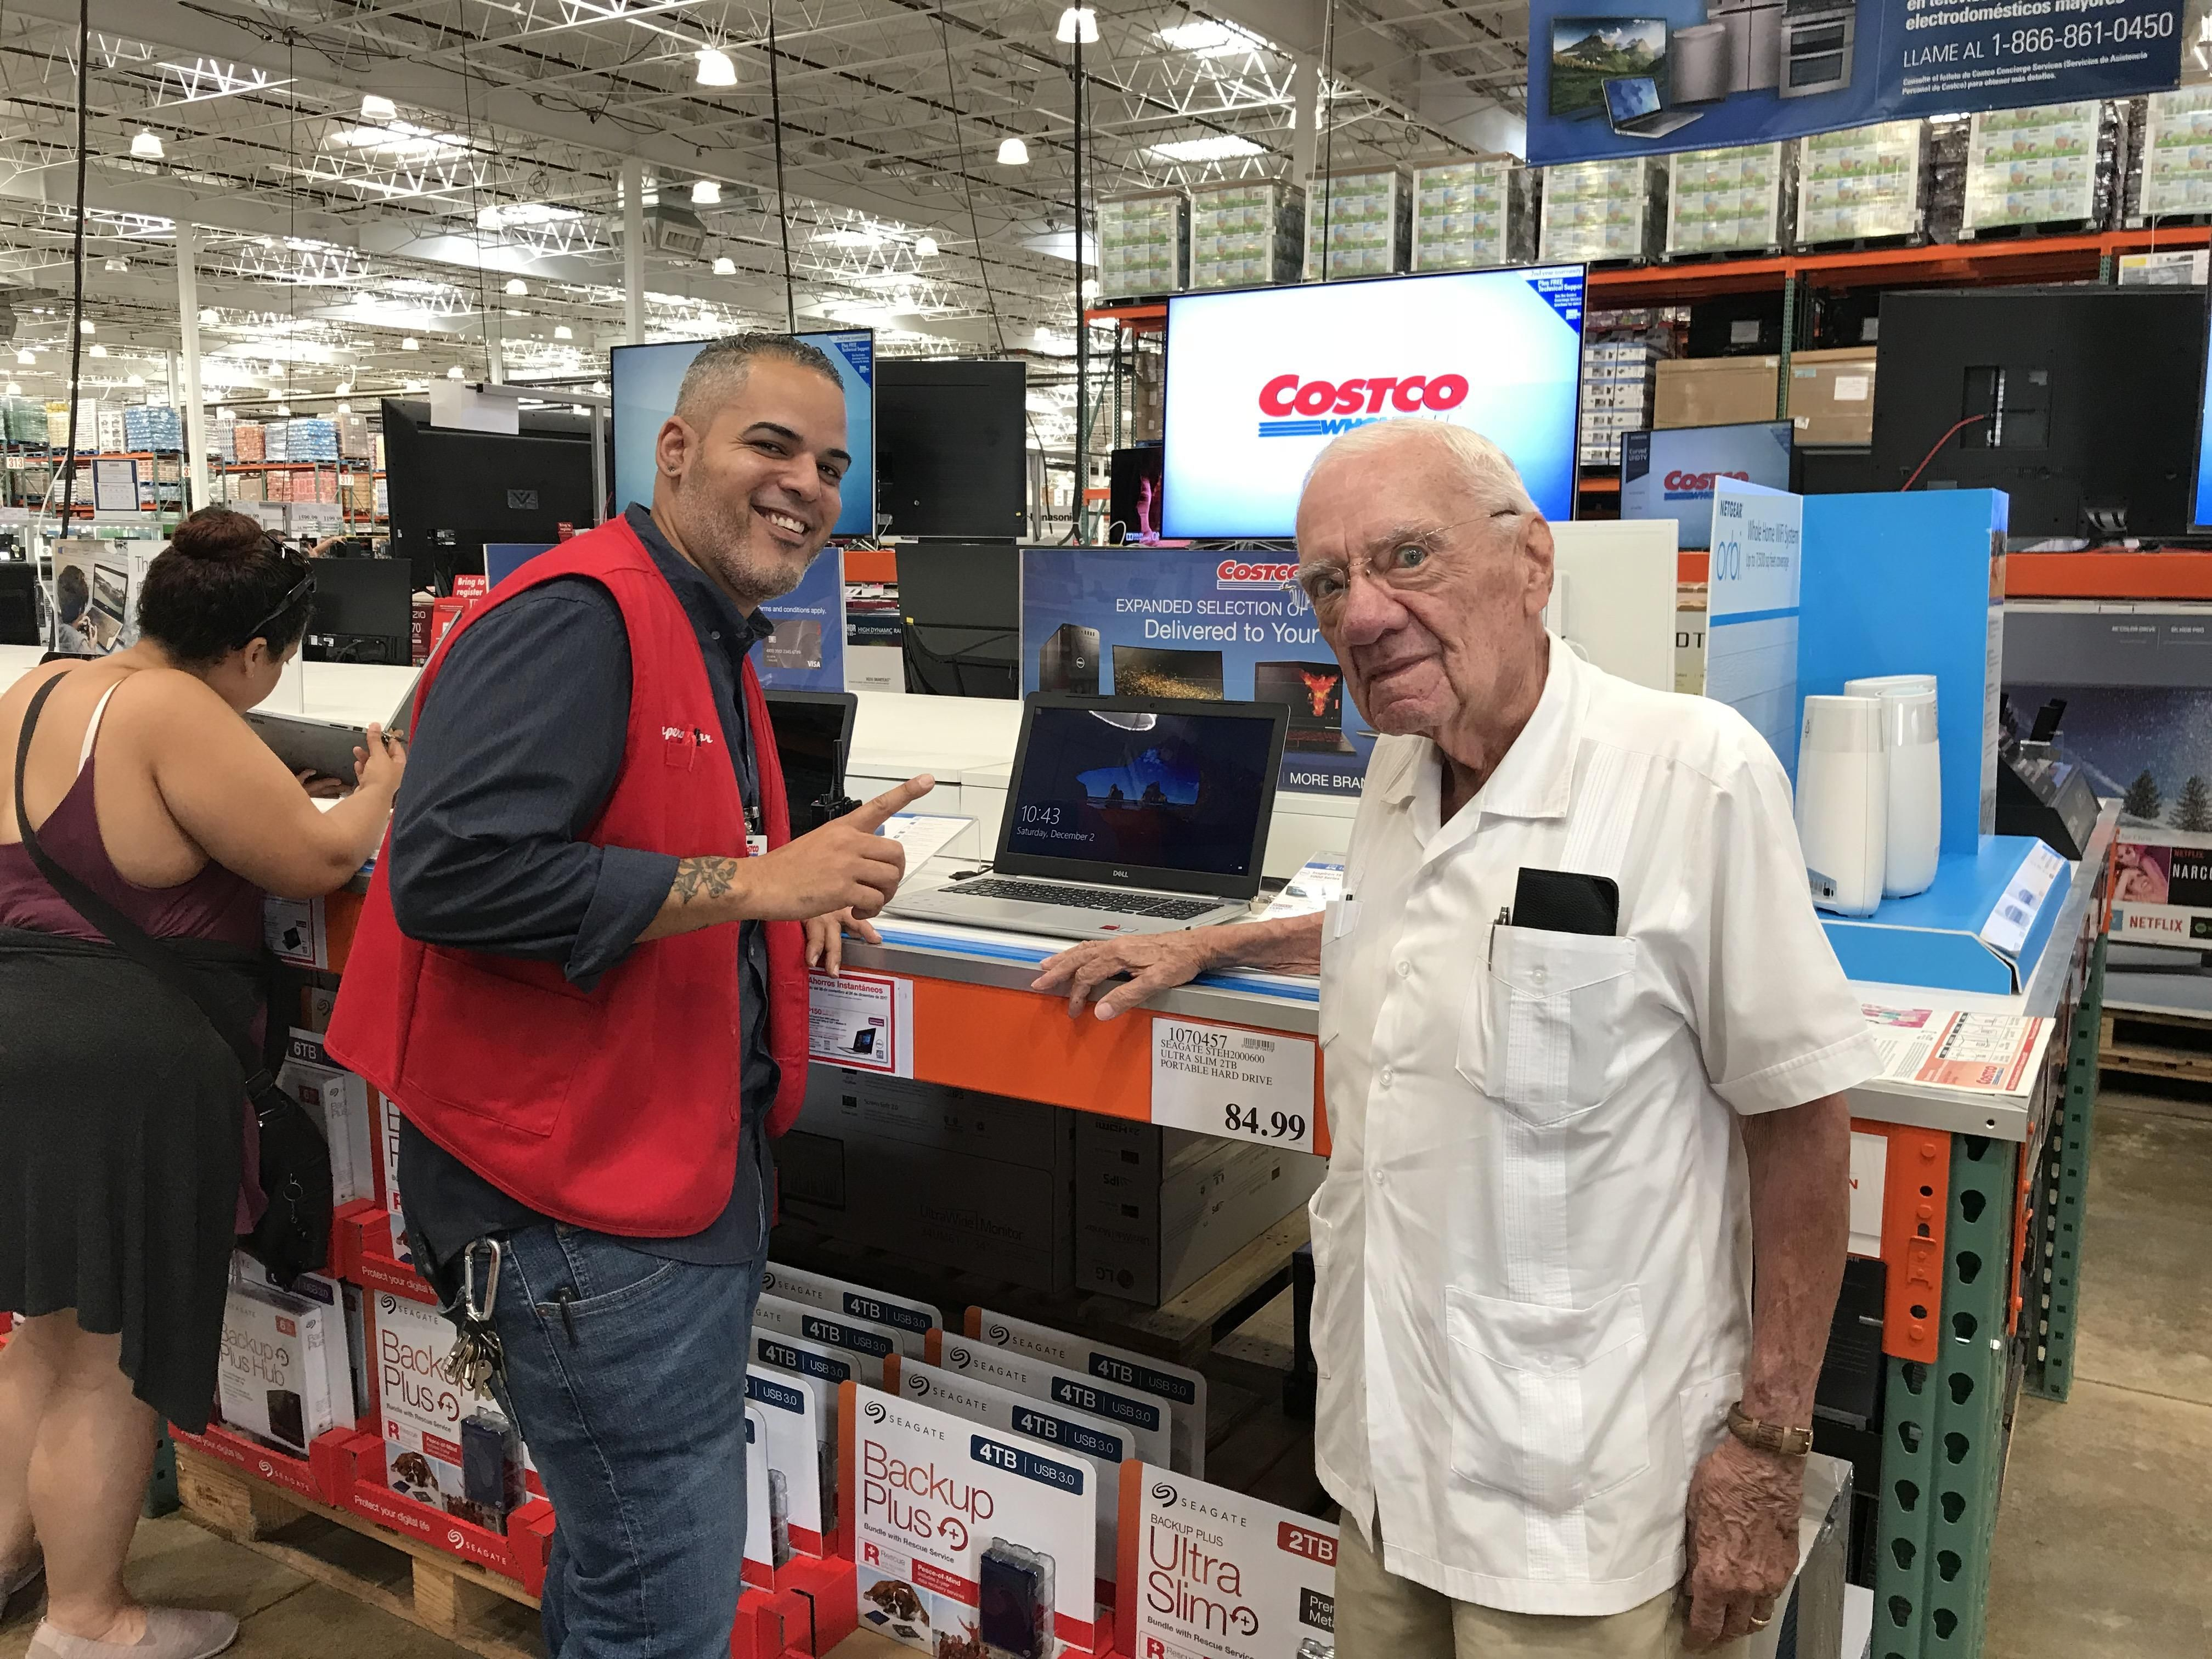 Today I Took My Dad To Costco To Buy A Laptop For Him And The Costco Person Helping Us Recognized Him He Was A Patient Of His When He Was